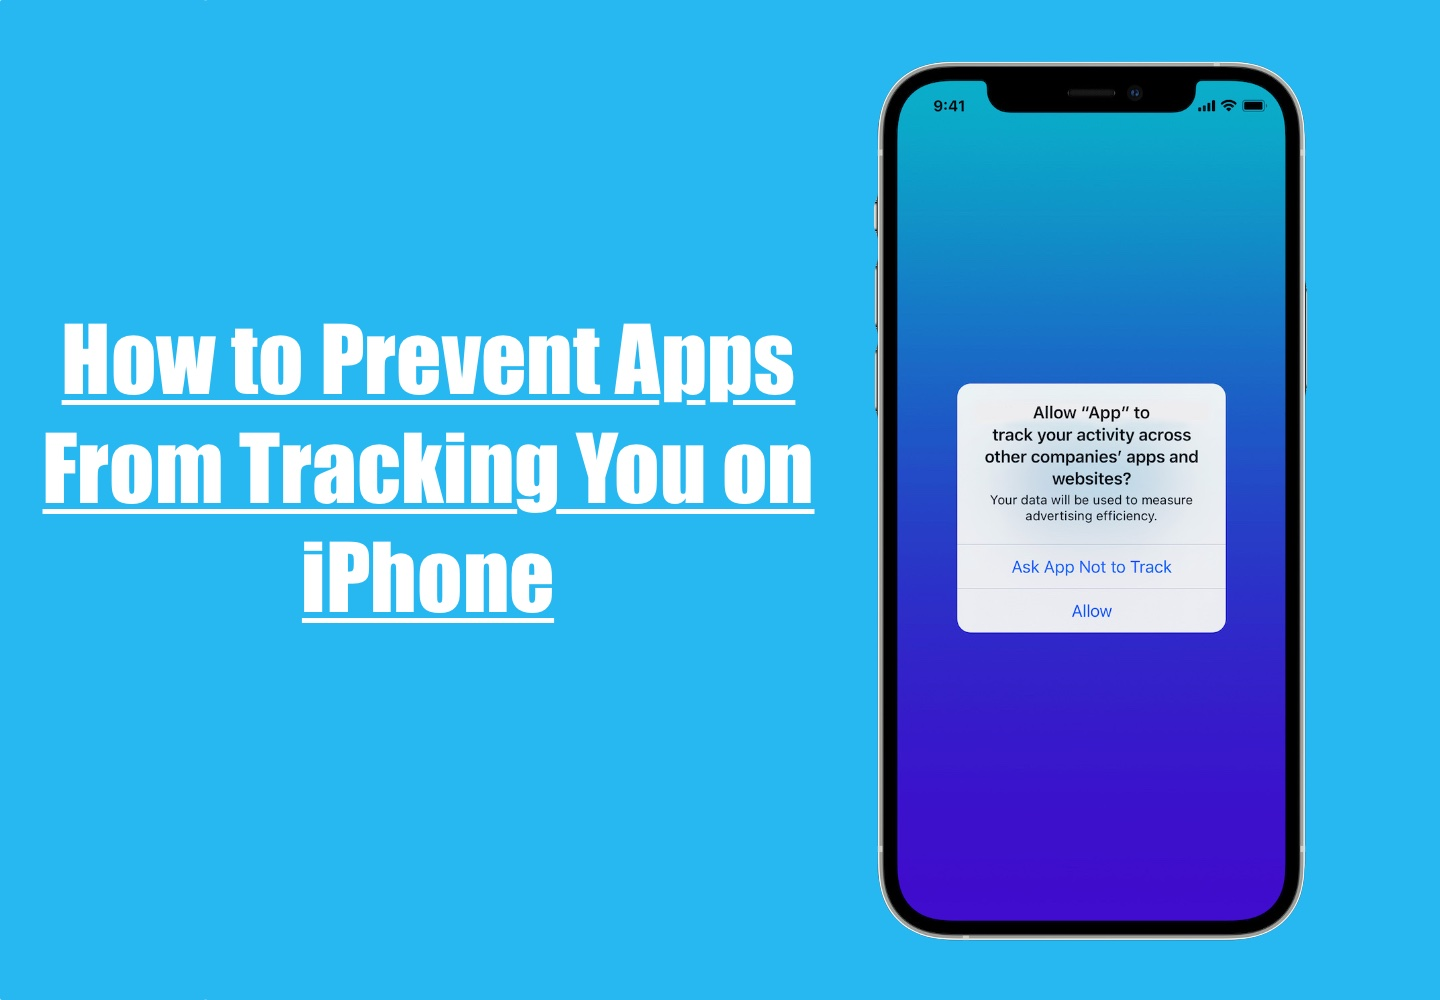 How to Prevent Apps From Tracking You on iPhone, How to Prevent Apps From Tracking You on iPhone